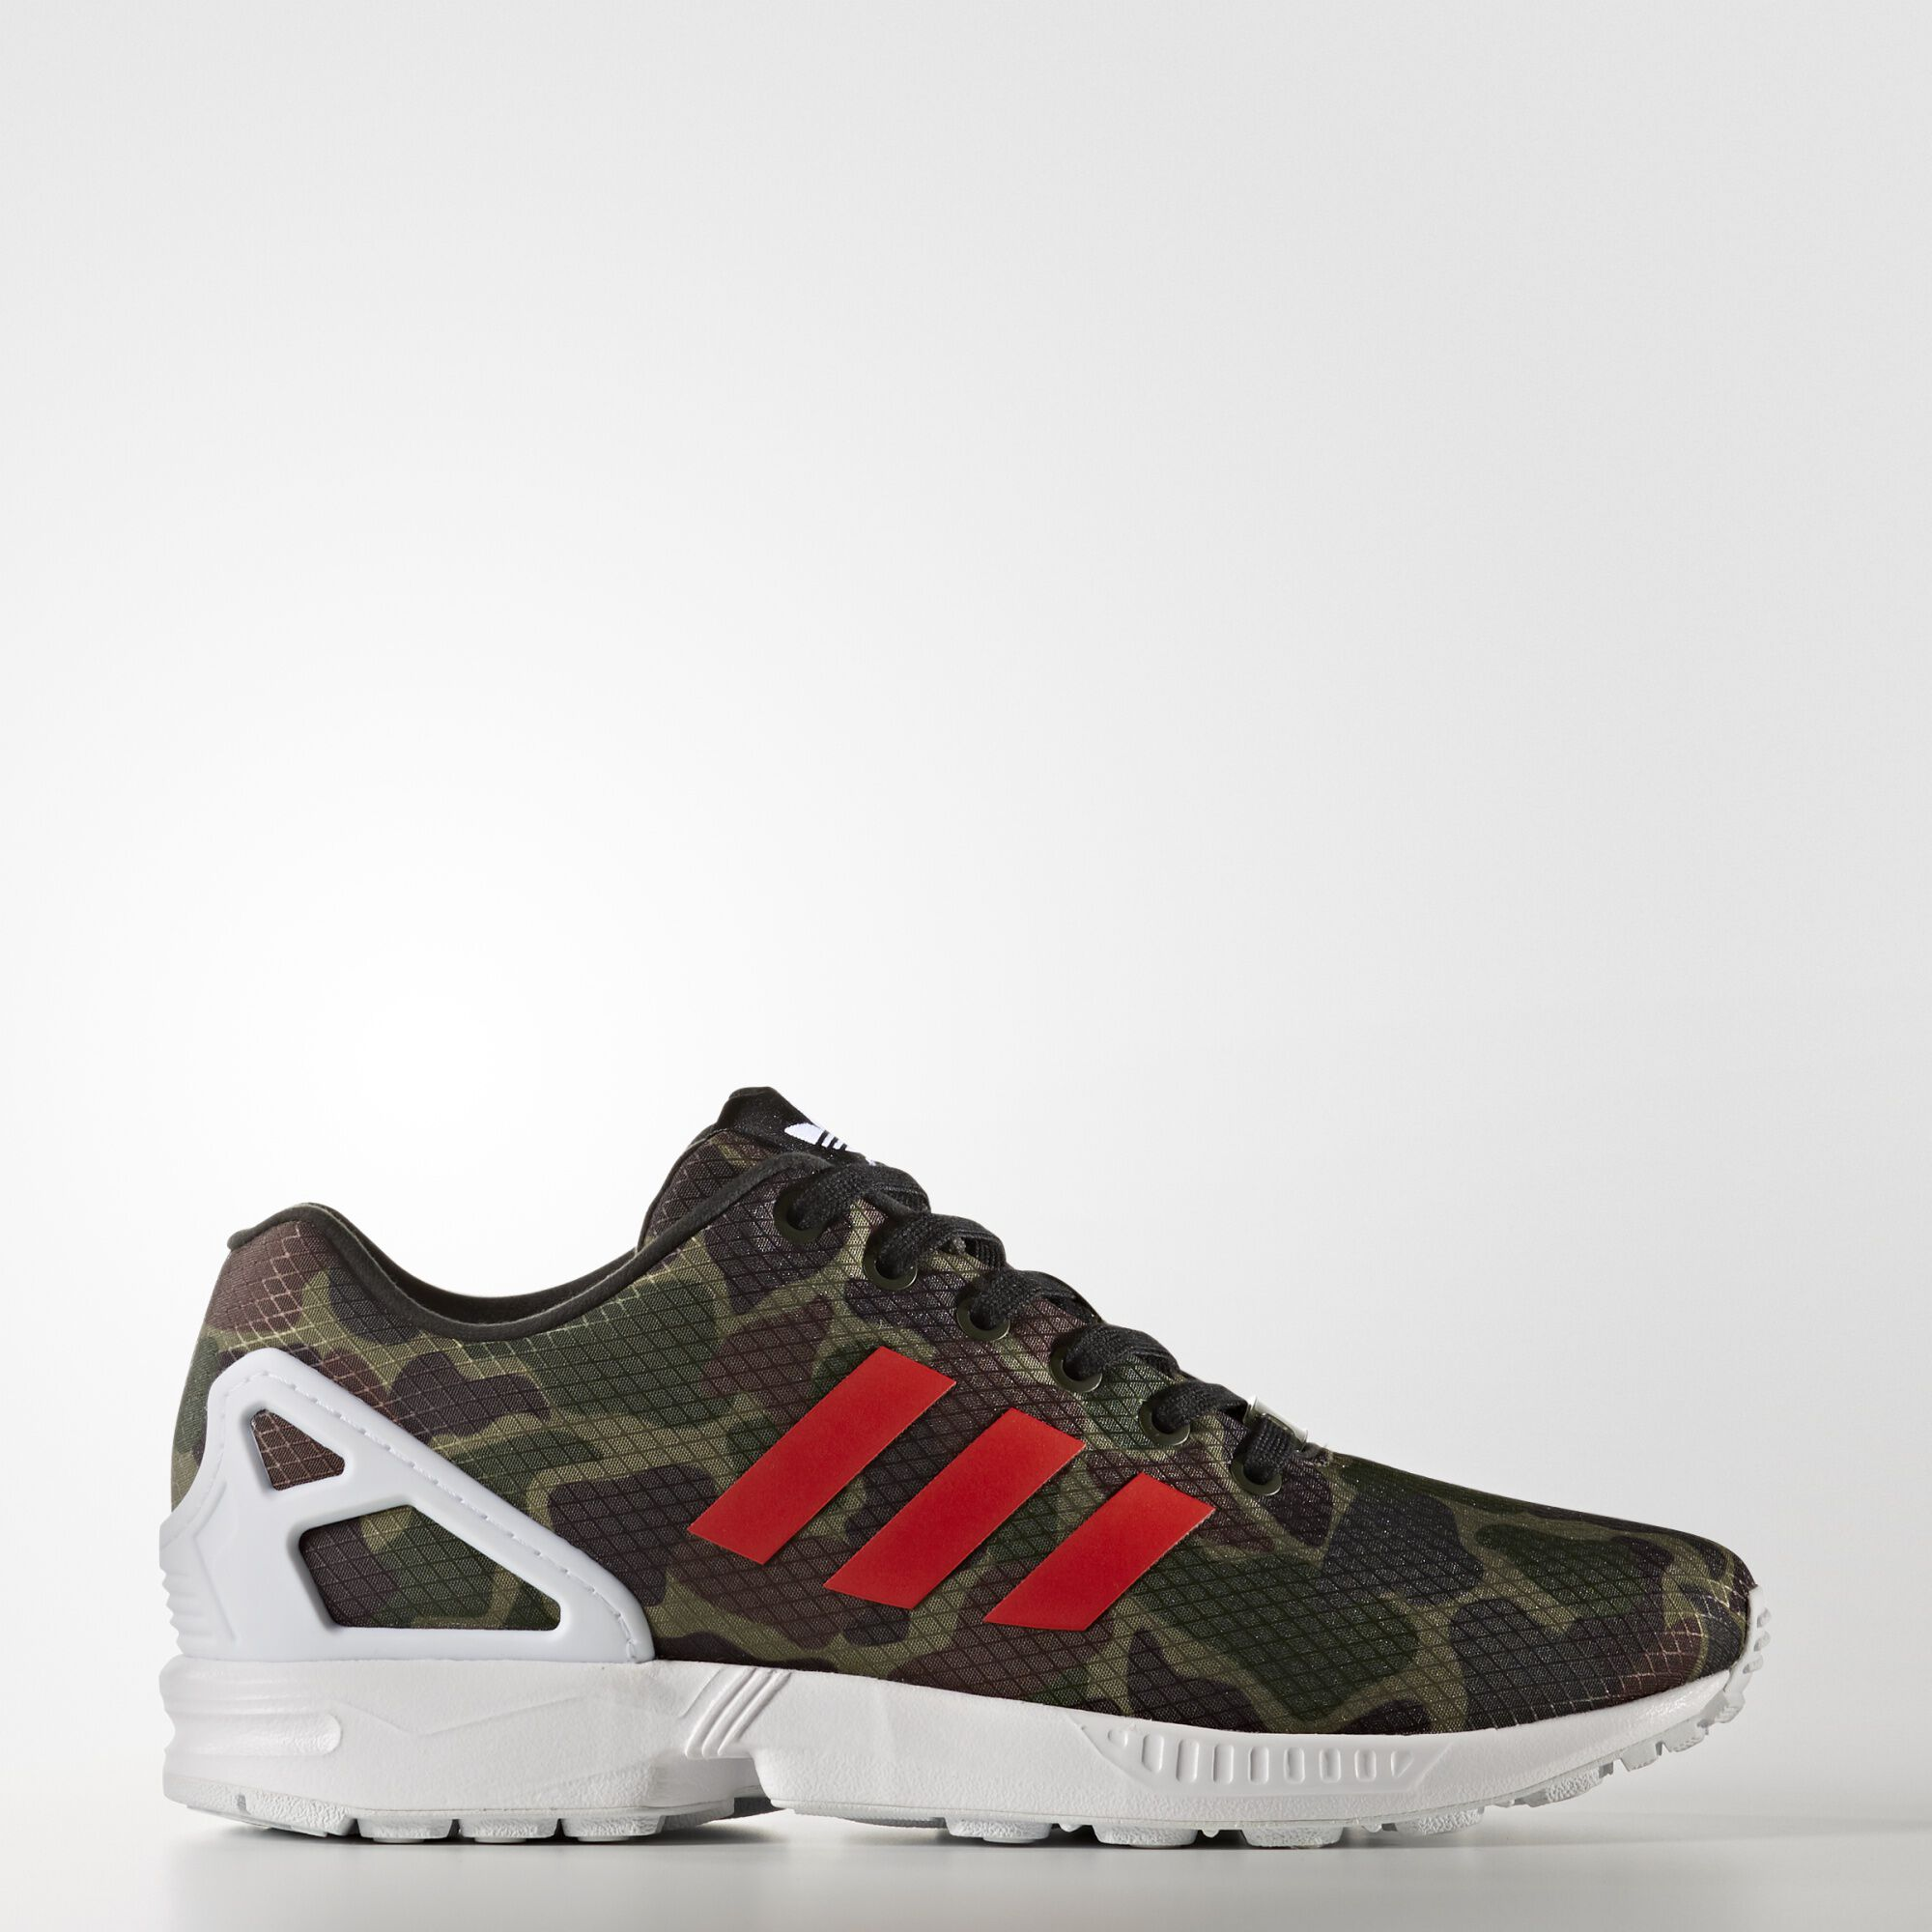 Adidas Zx Flux White And Rainbow